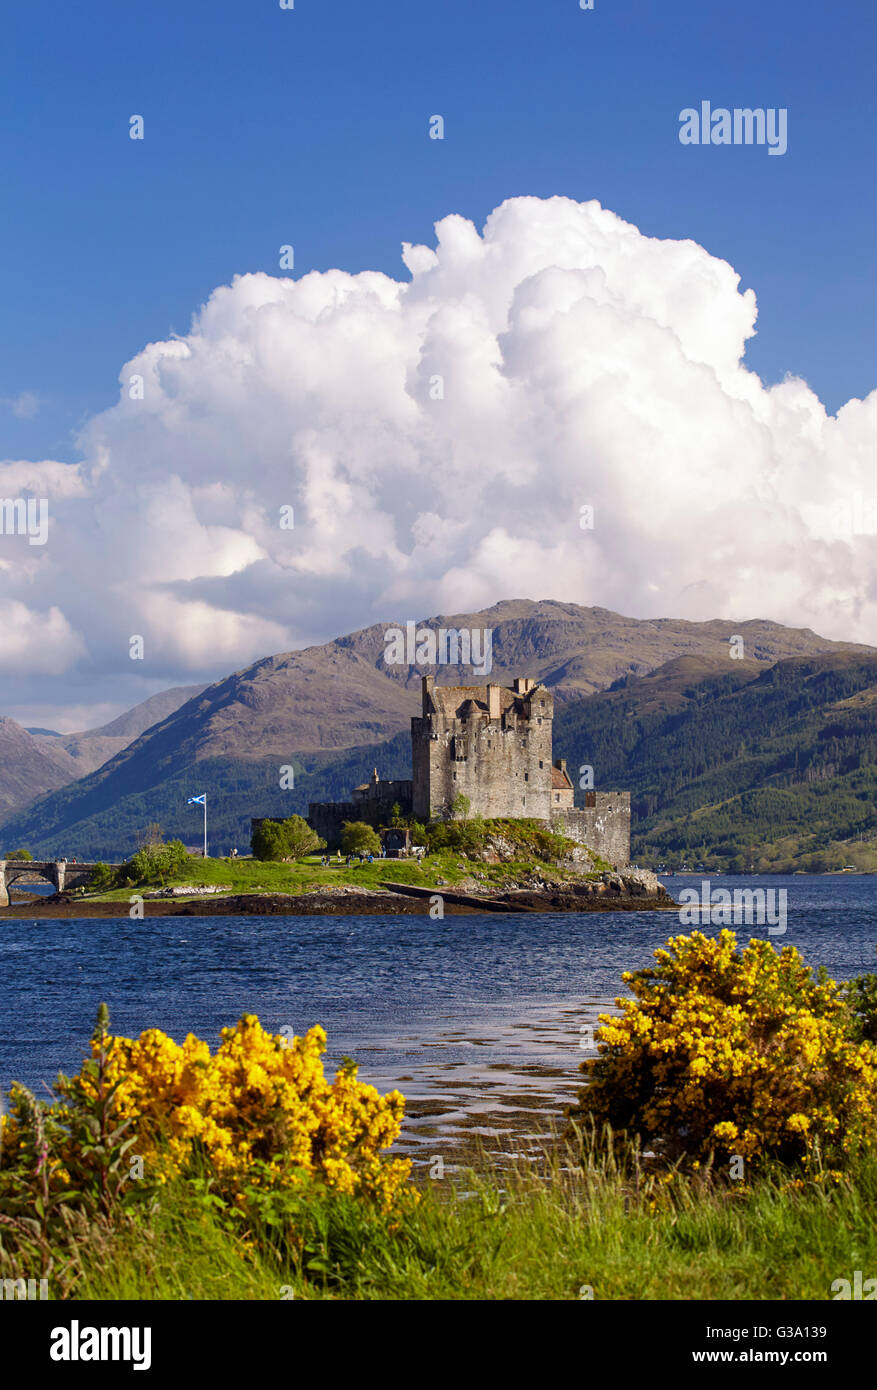 Eilean Donan Castle at the conjuction of Loch Duich, Loch Alsh and Loch Long.  Dornie, Ross and Cromarty, Scotland. - Stock Image